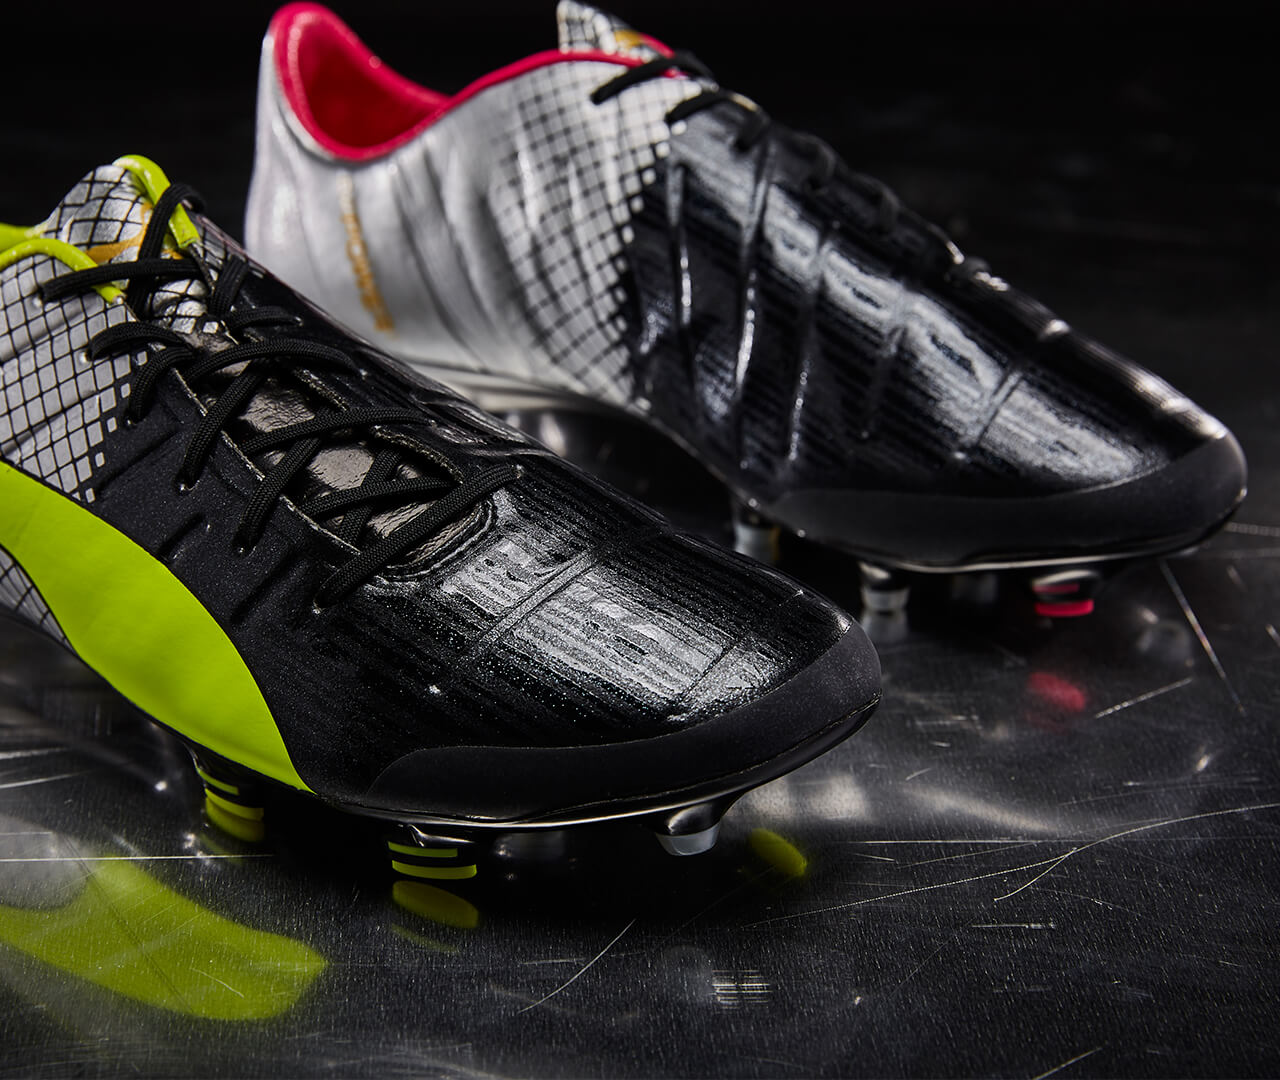 Puma Evopower 2016 Celebration Pack